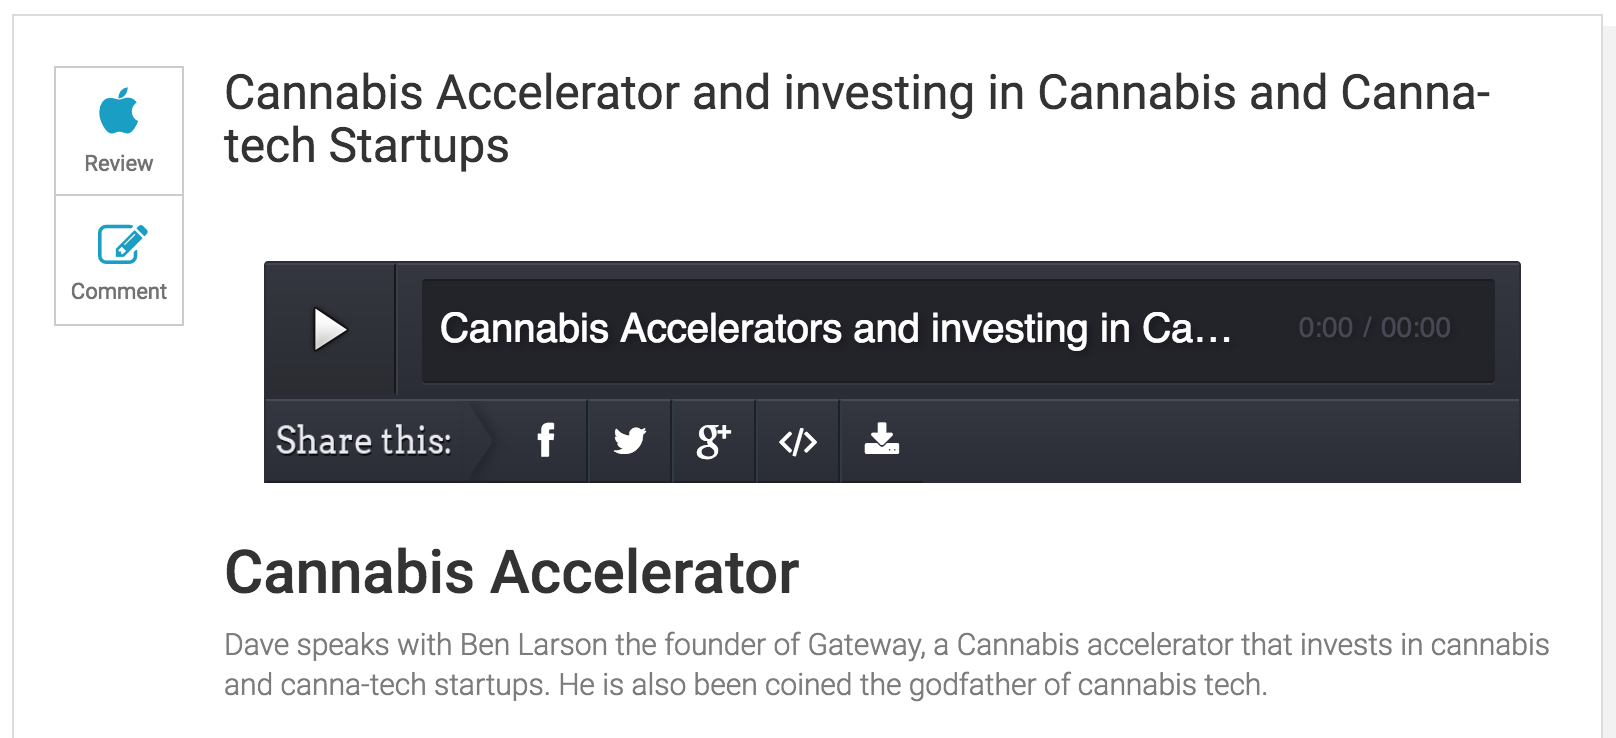 Cannabis Accelerator and investing in Cannabis and Canna